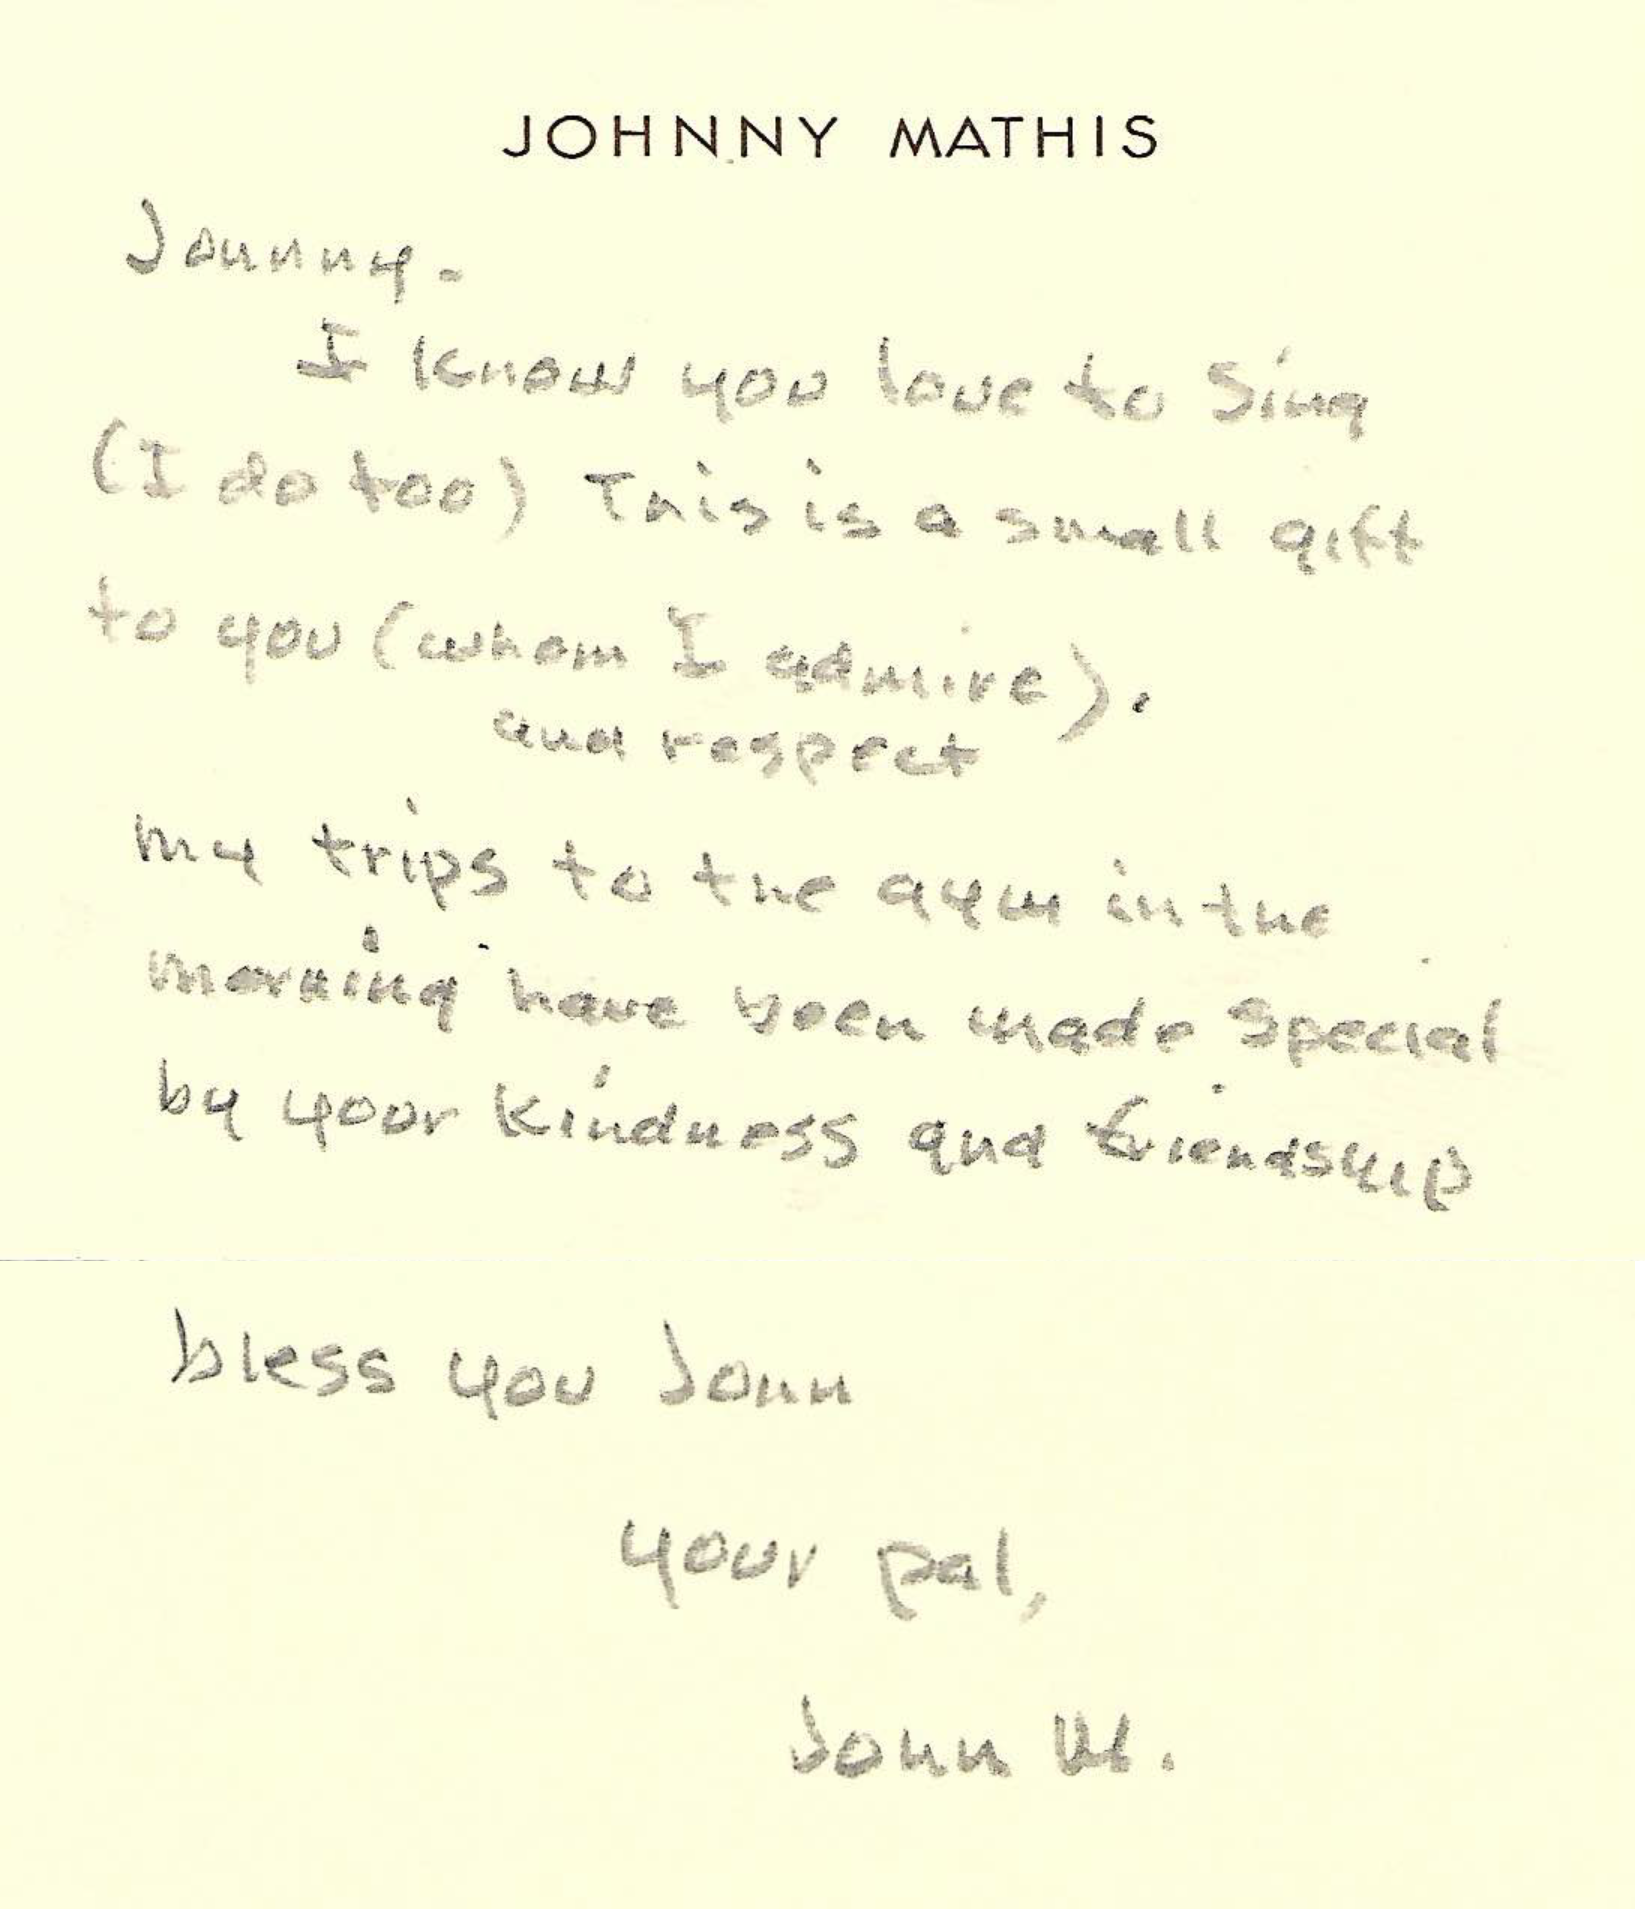 """Johnny - I know you love to sing (I do too). This is a small gift to you (whom I admire and respect). My trips to the gym in the morning have been made special by your kindness and friendship. Bless you John."" - Your Pal,John M."